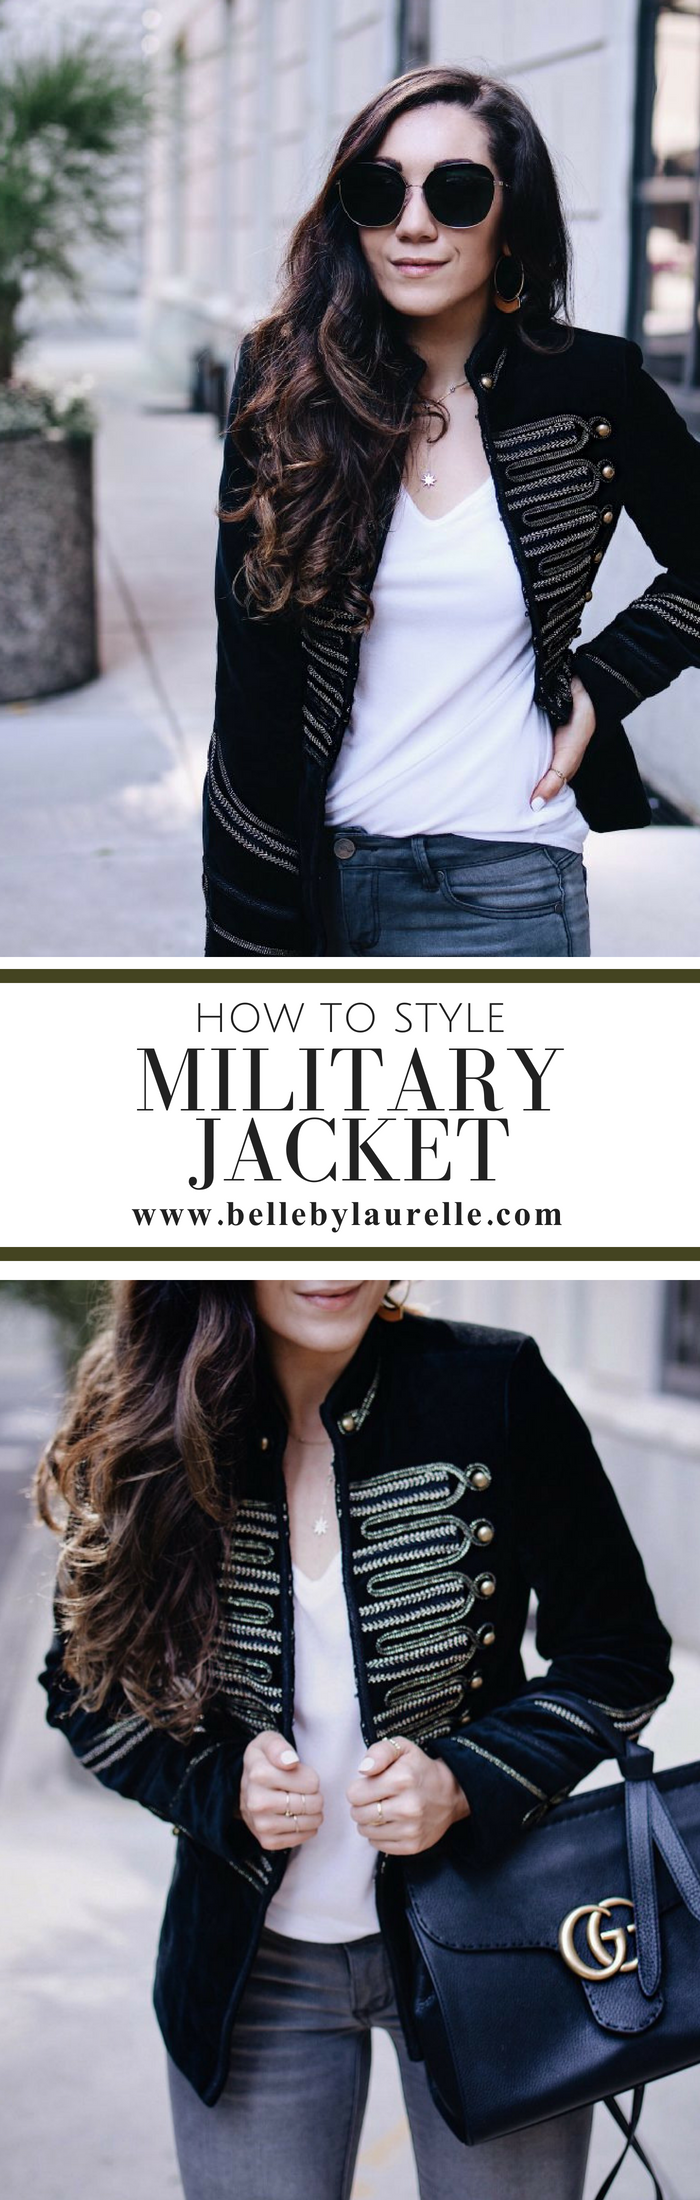 Belle by Laurelle How to Style Military Jacket Fashion Blog